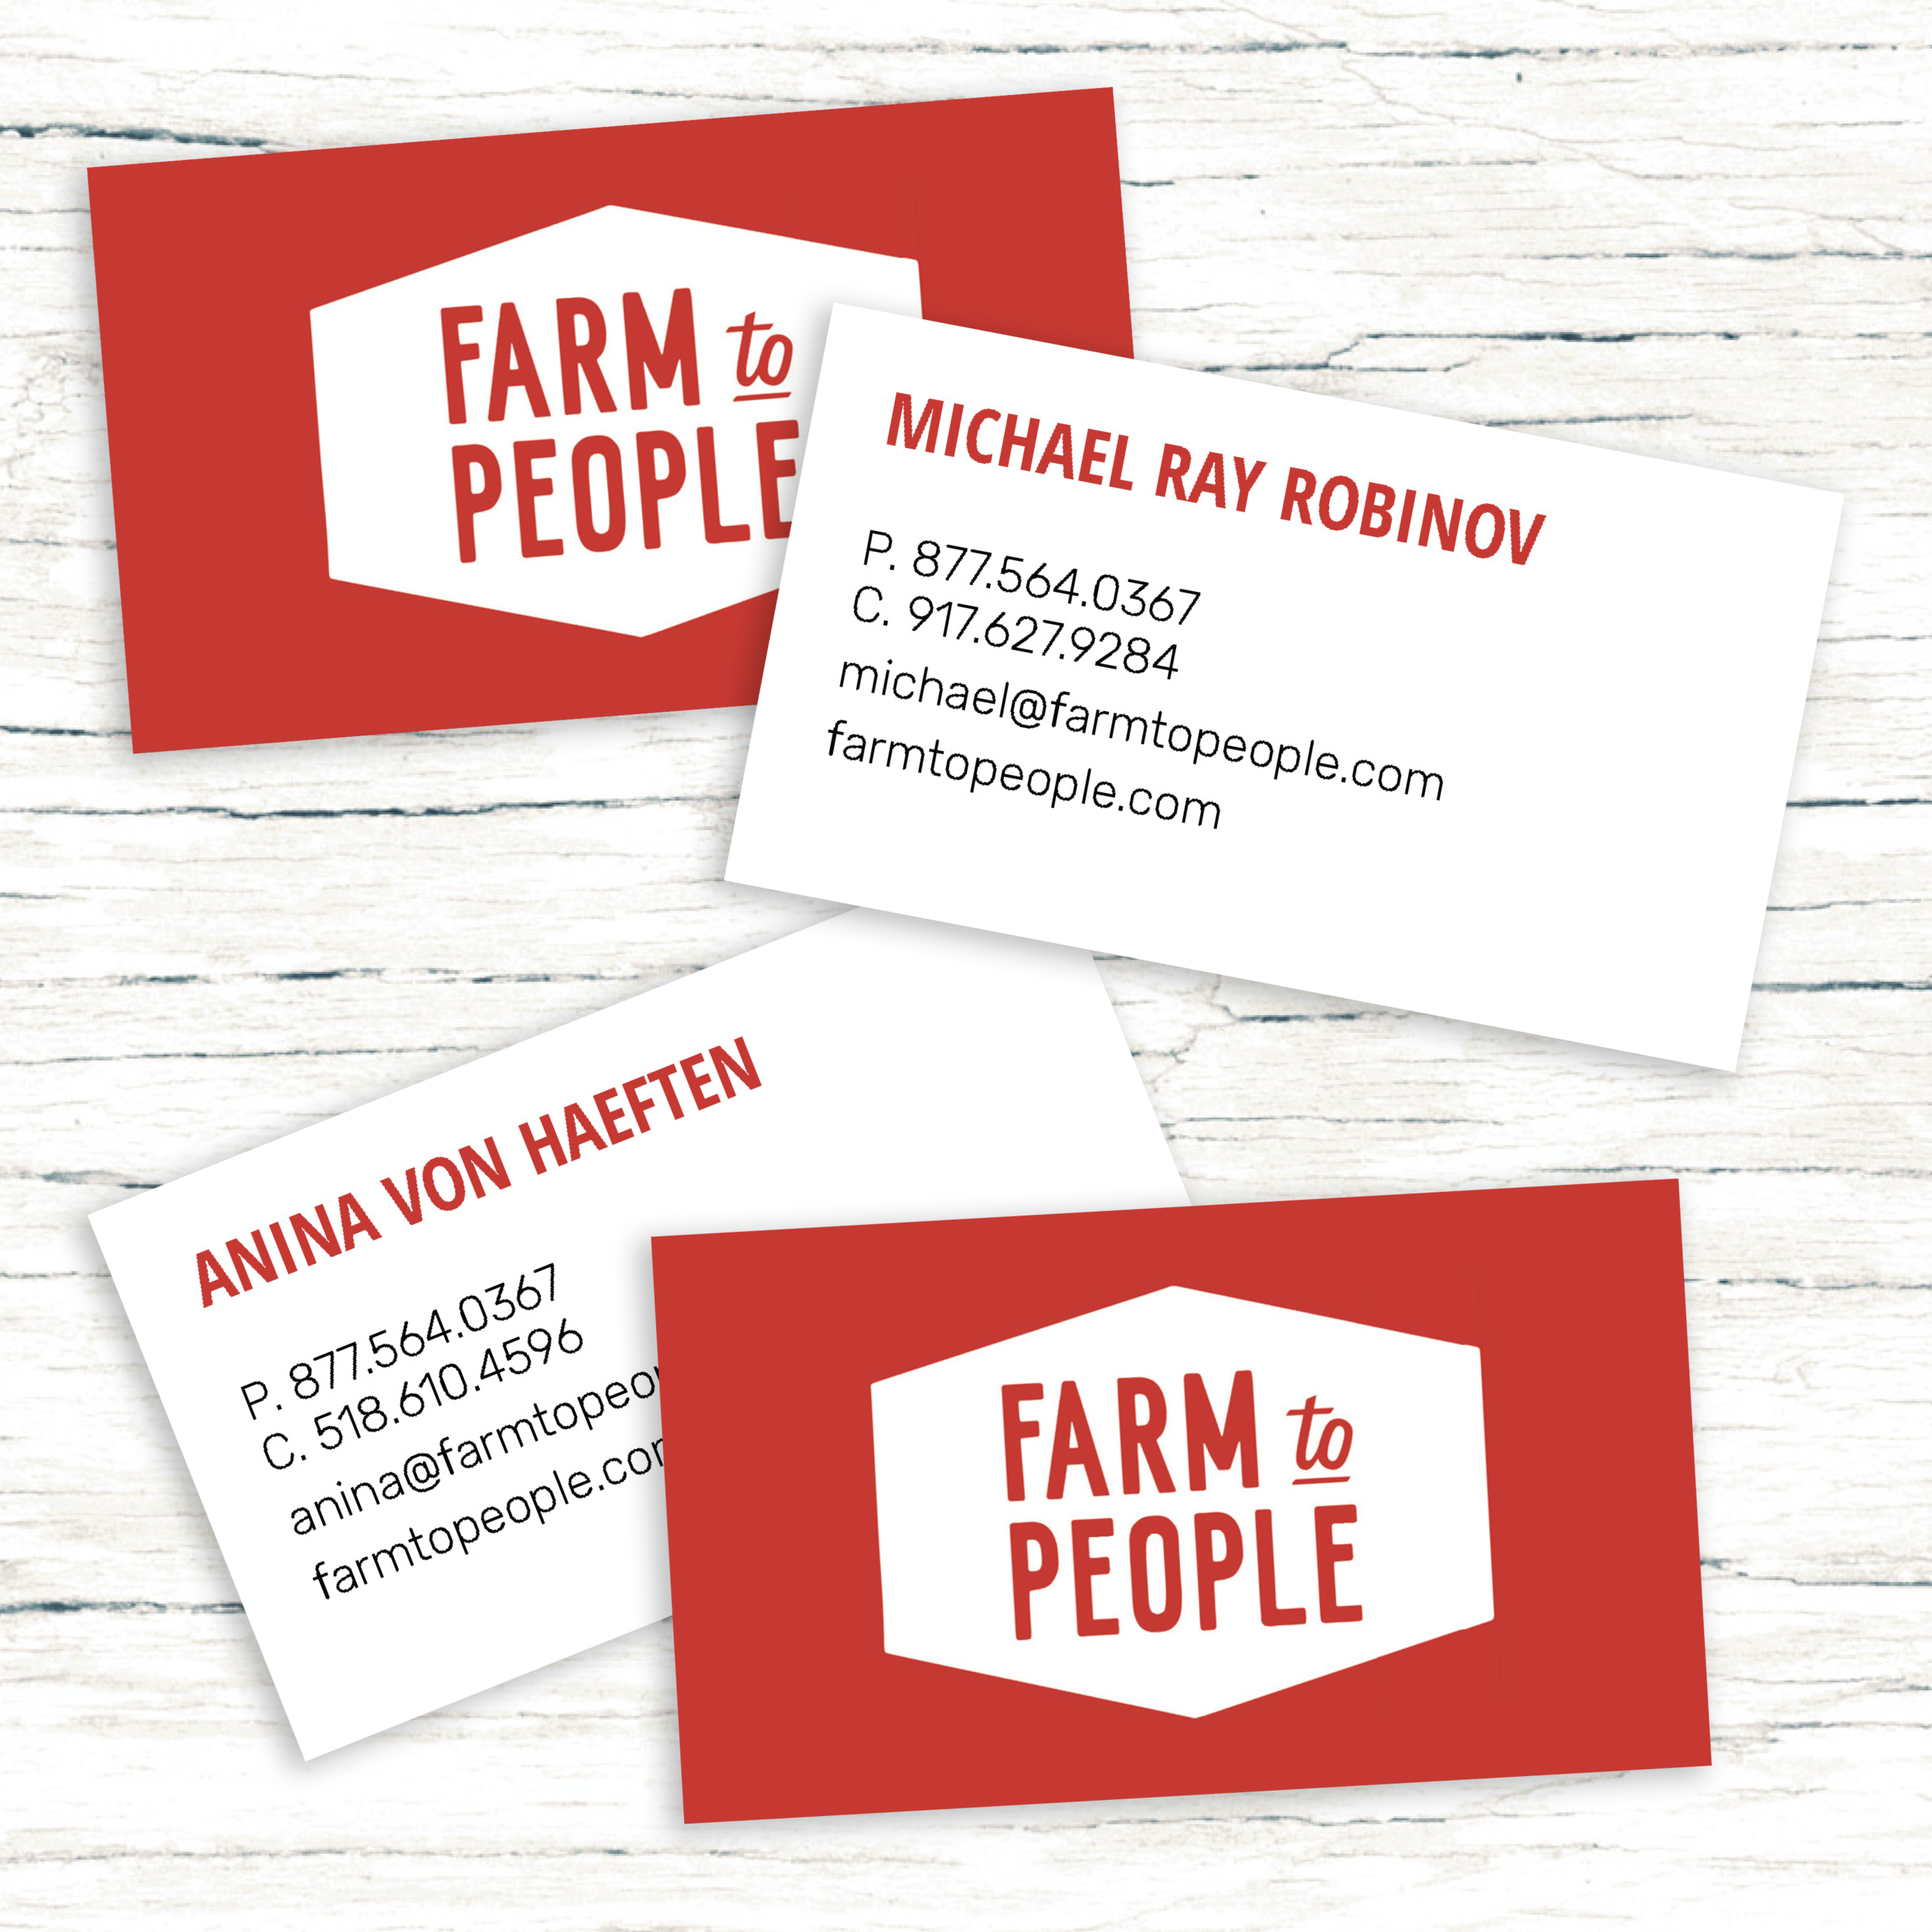 Project graphics square - f2p biz cards2.png